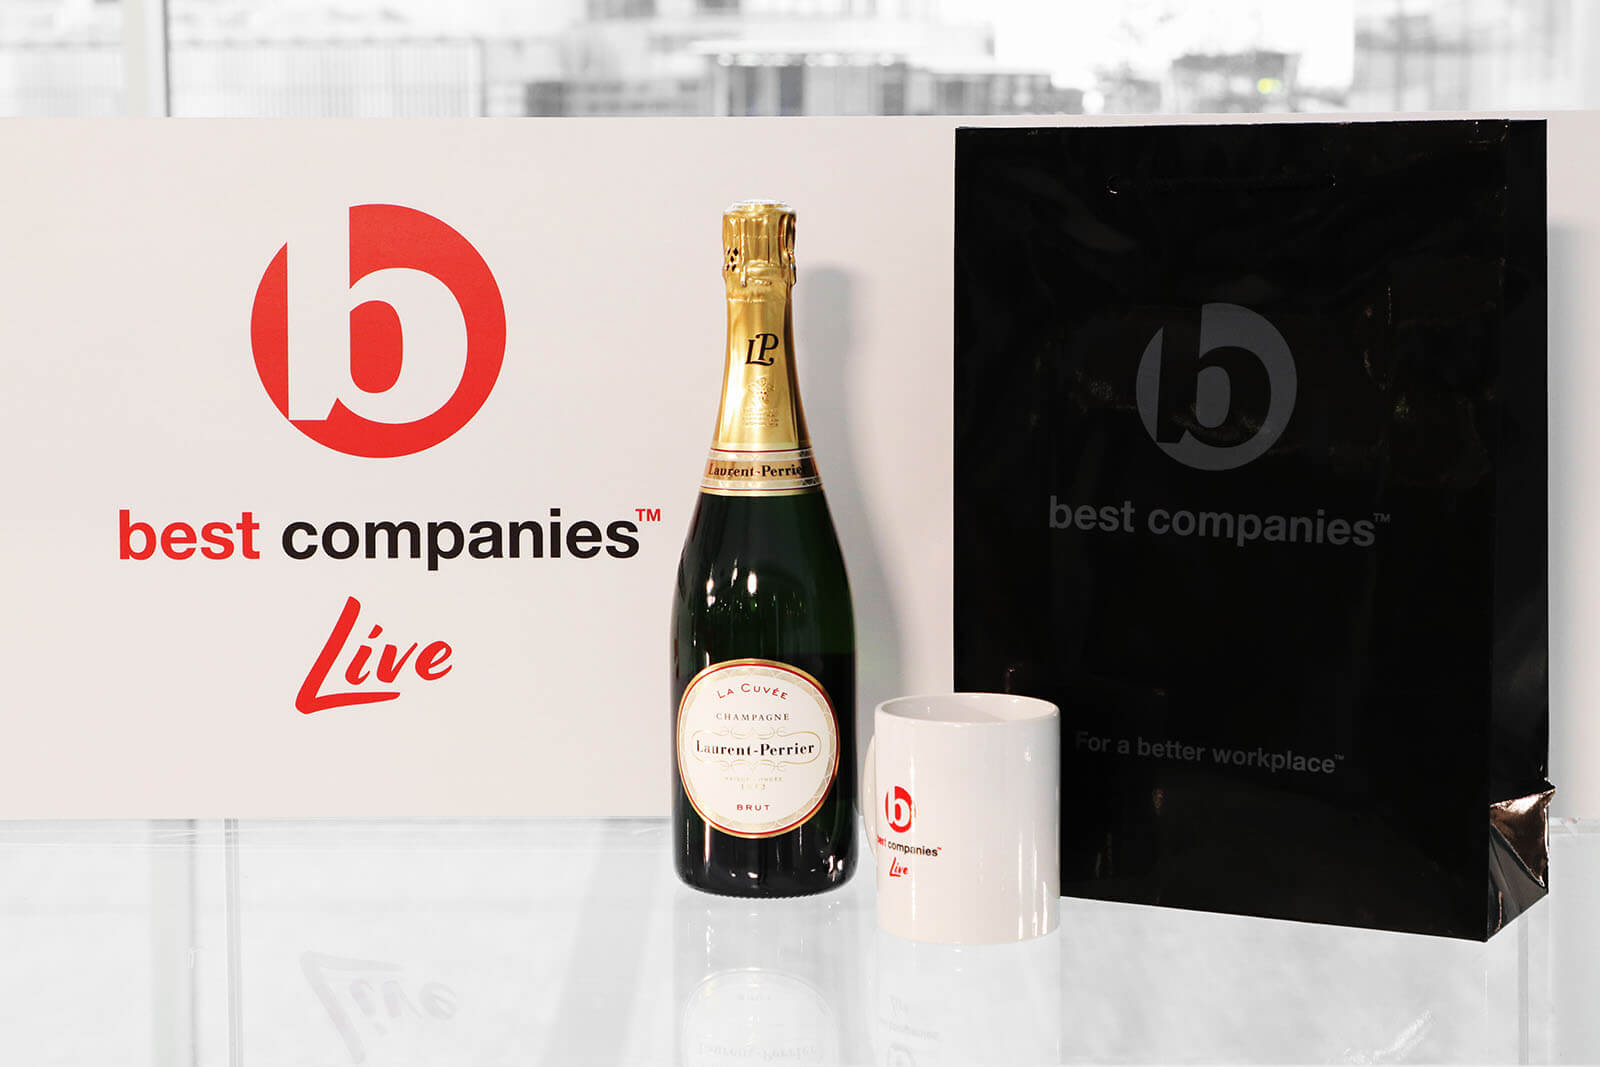 Best Companies Live Logo with Laurent Perrier Champagne and the official Best Companies Live mug